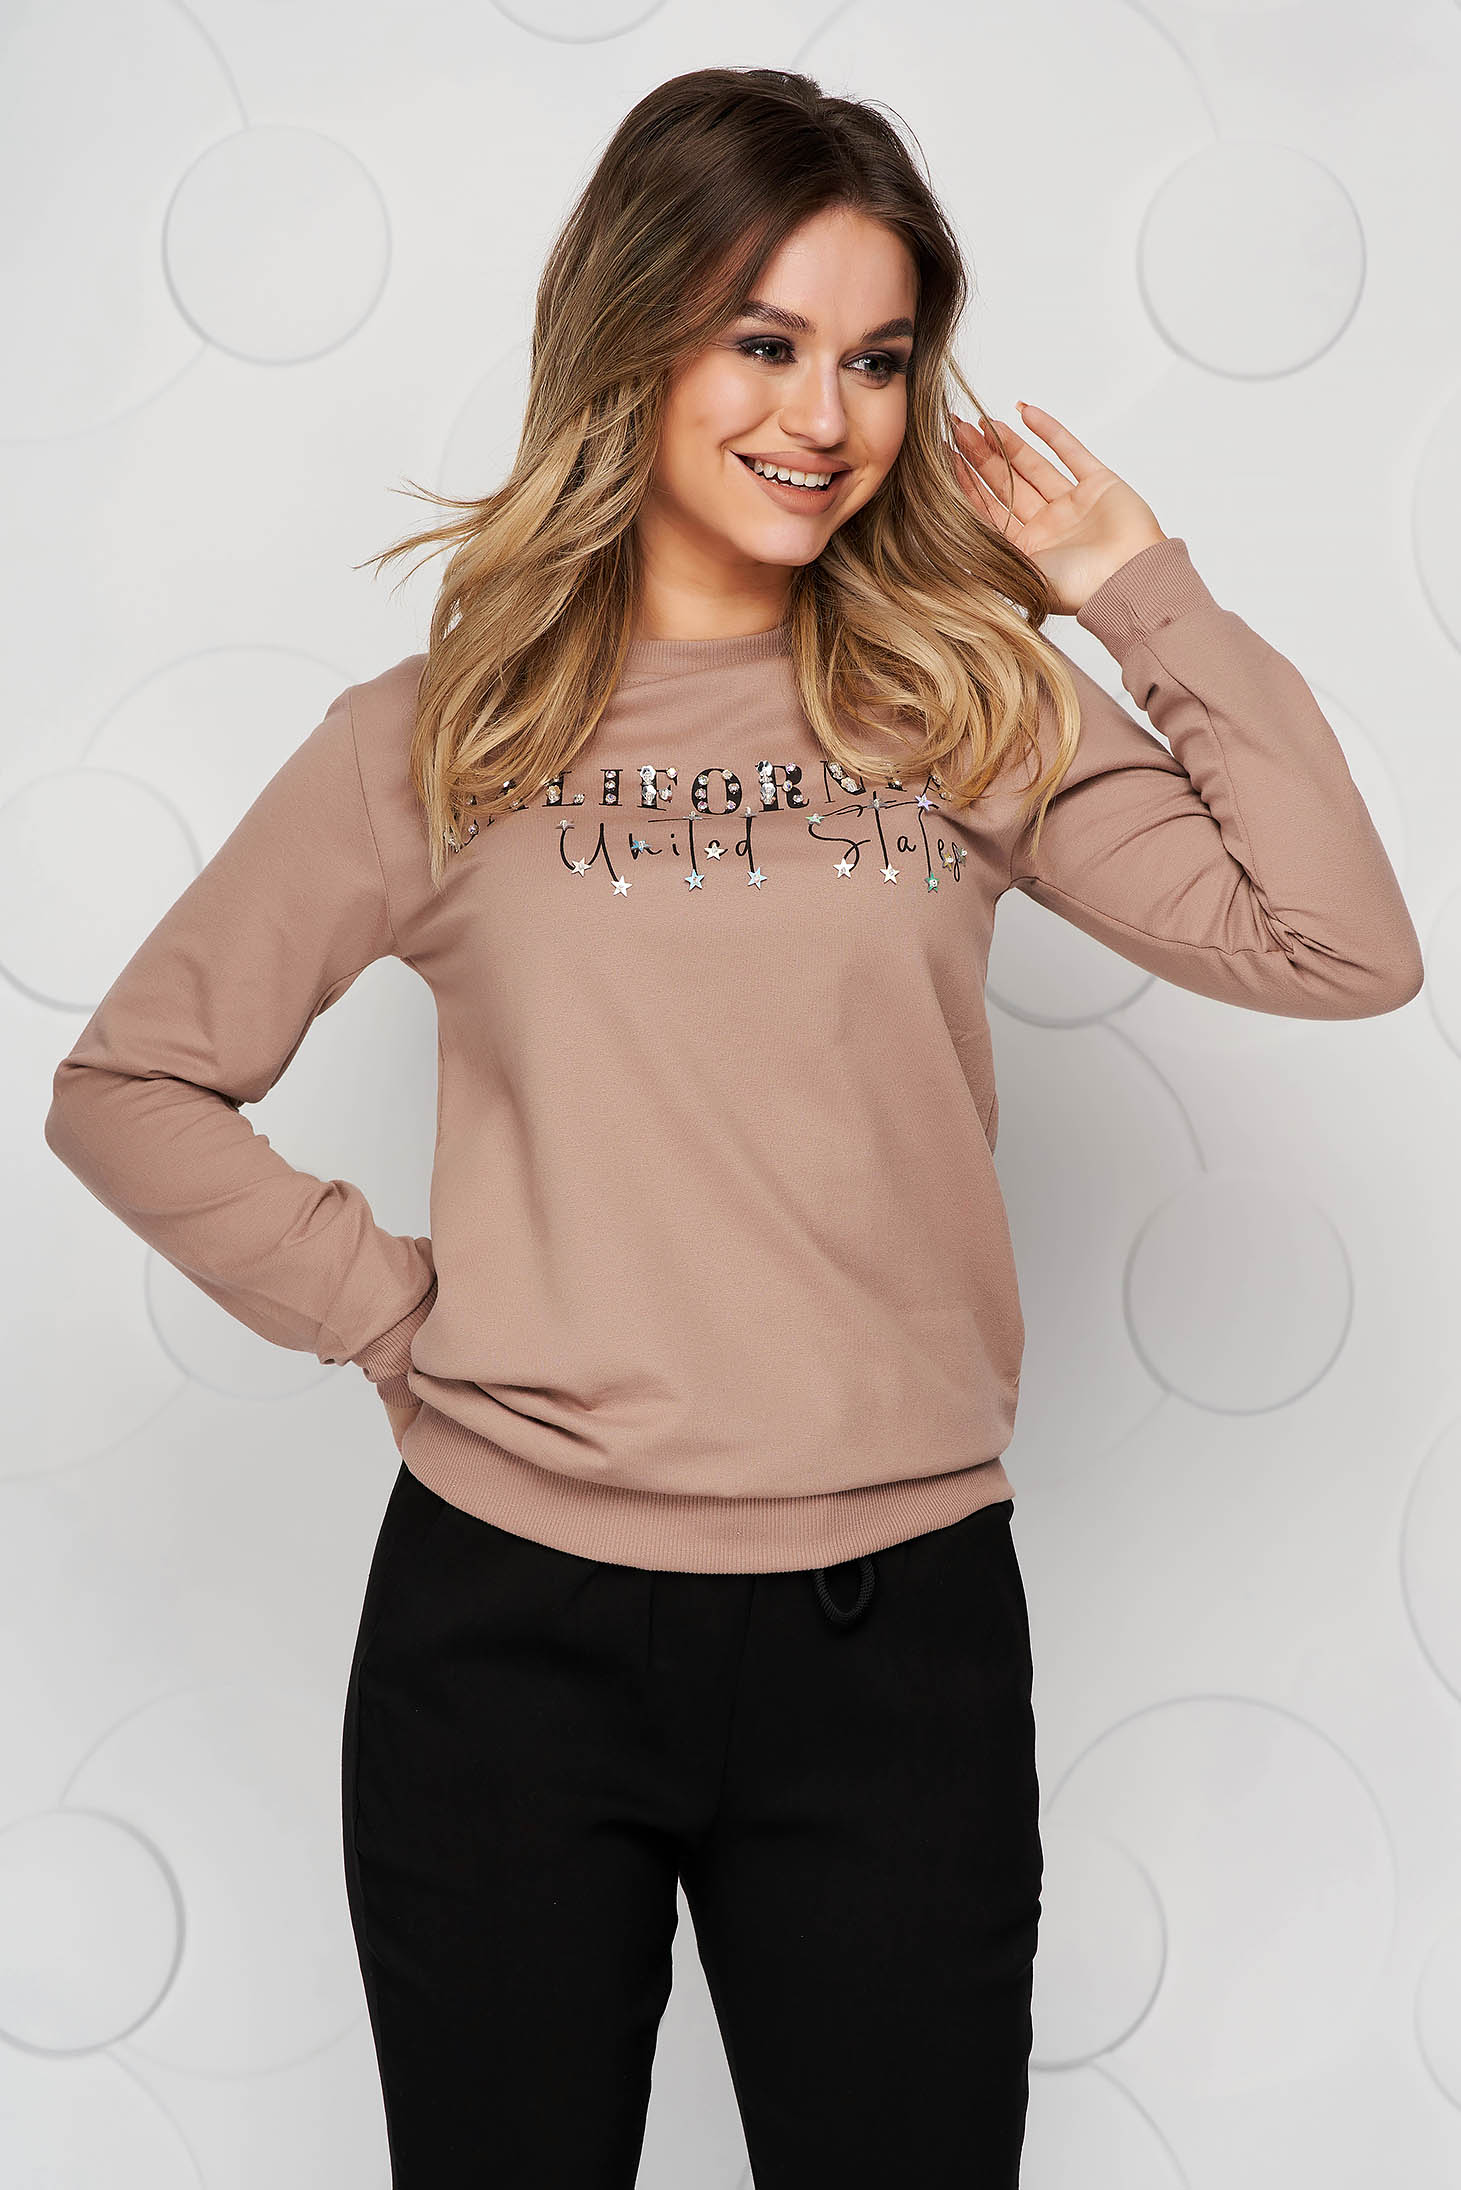 Cappuccino women`s blouse cotton with crystal embellished details loose fit